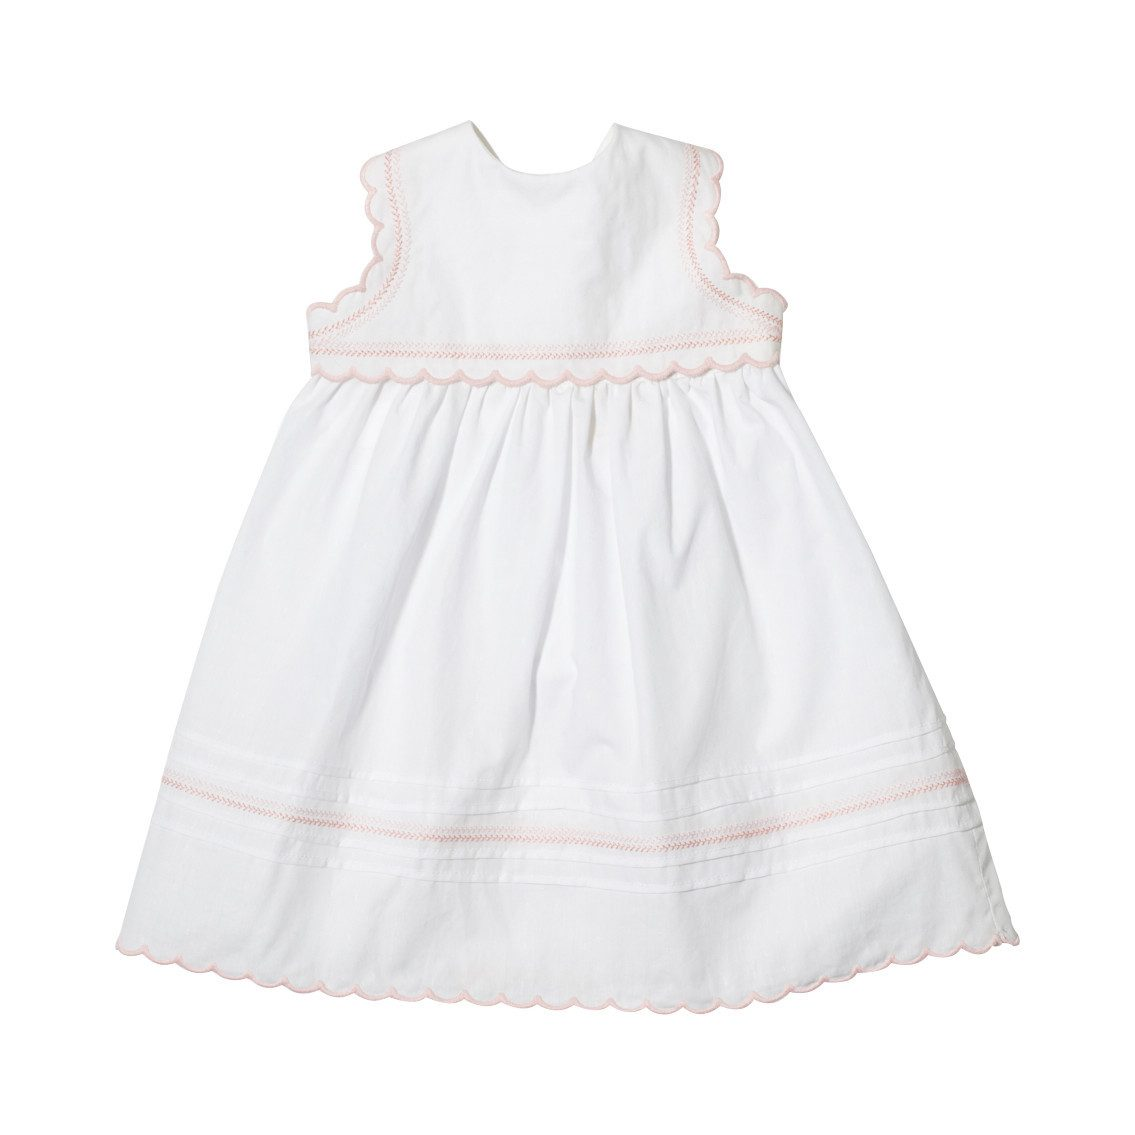 Oso & Me Sleeveless White Flower Girl Dress with Pink Detailing